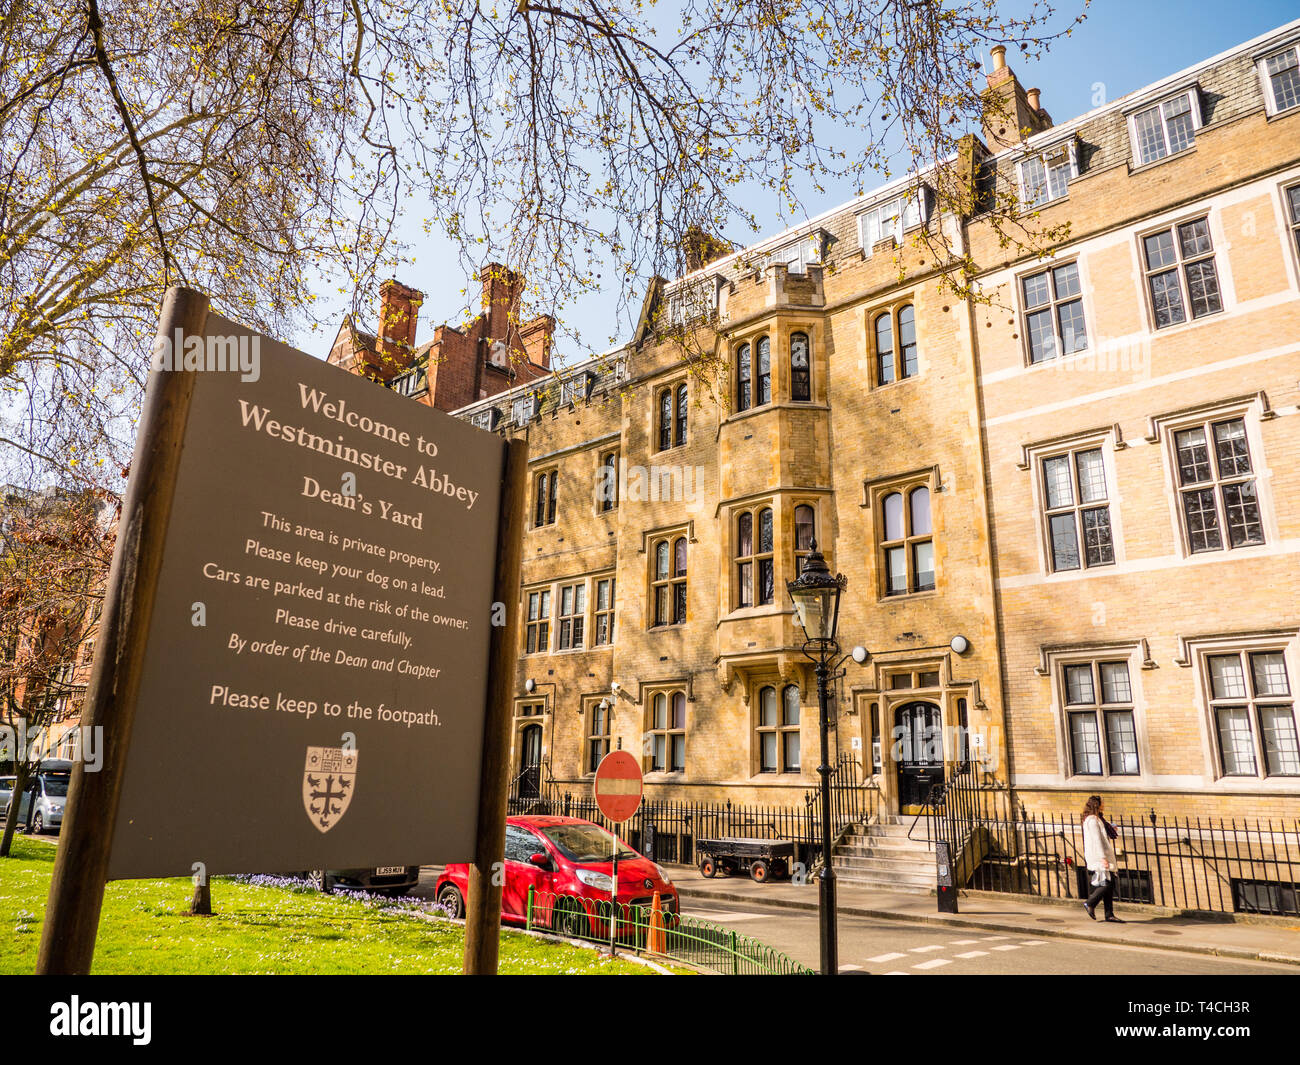 Westminster Abbeys Deans Yard, Westminster Abbey, Westminster, London, England, UK, GB. - Stock Image